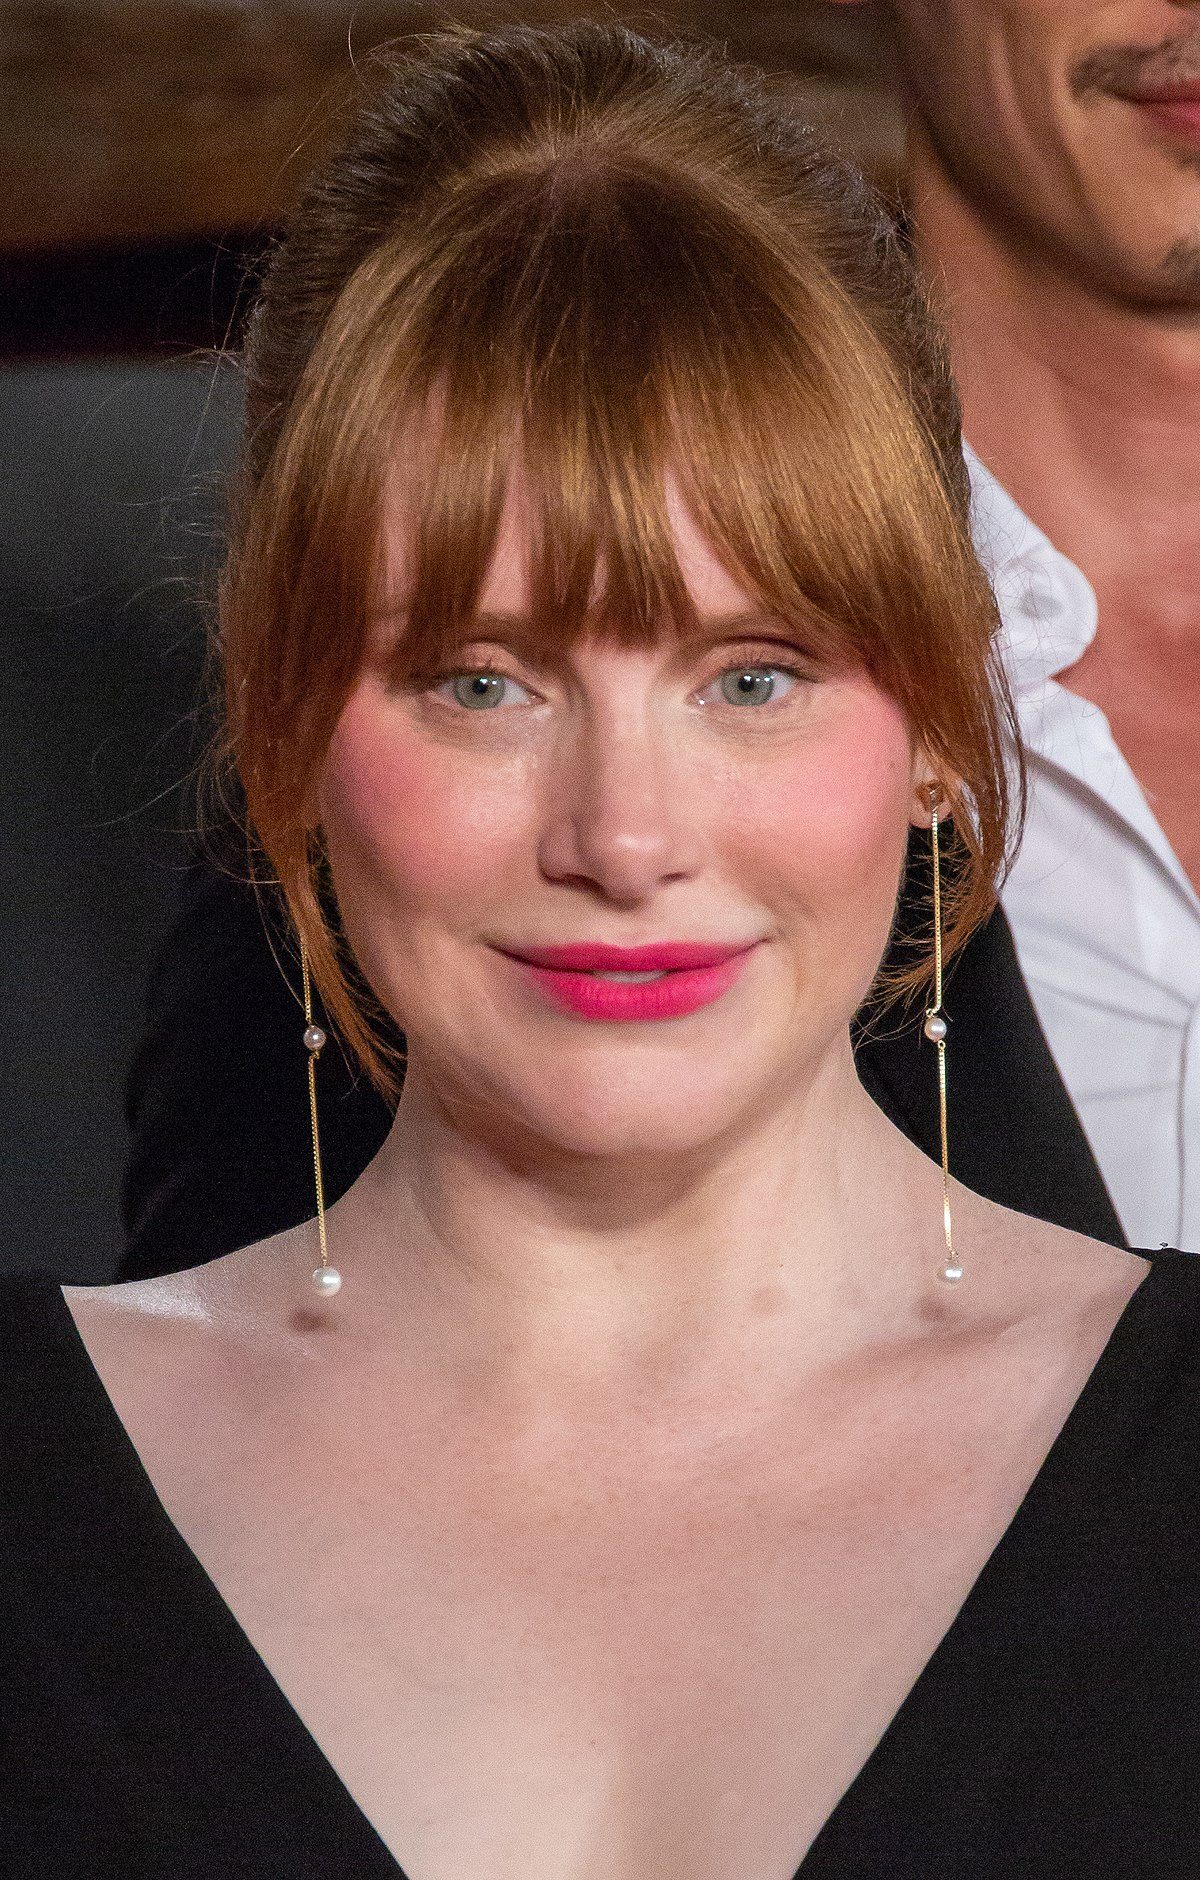 Young Bryce Dallas Howard naked (15 foto and video), Tits, Fappening, Twitter, cameltoe 2006